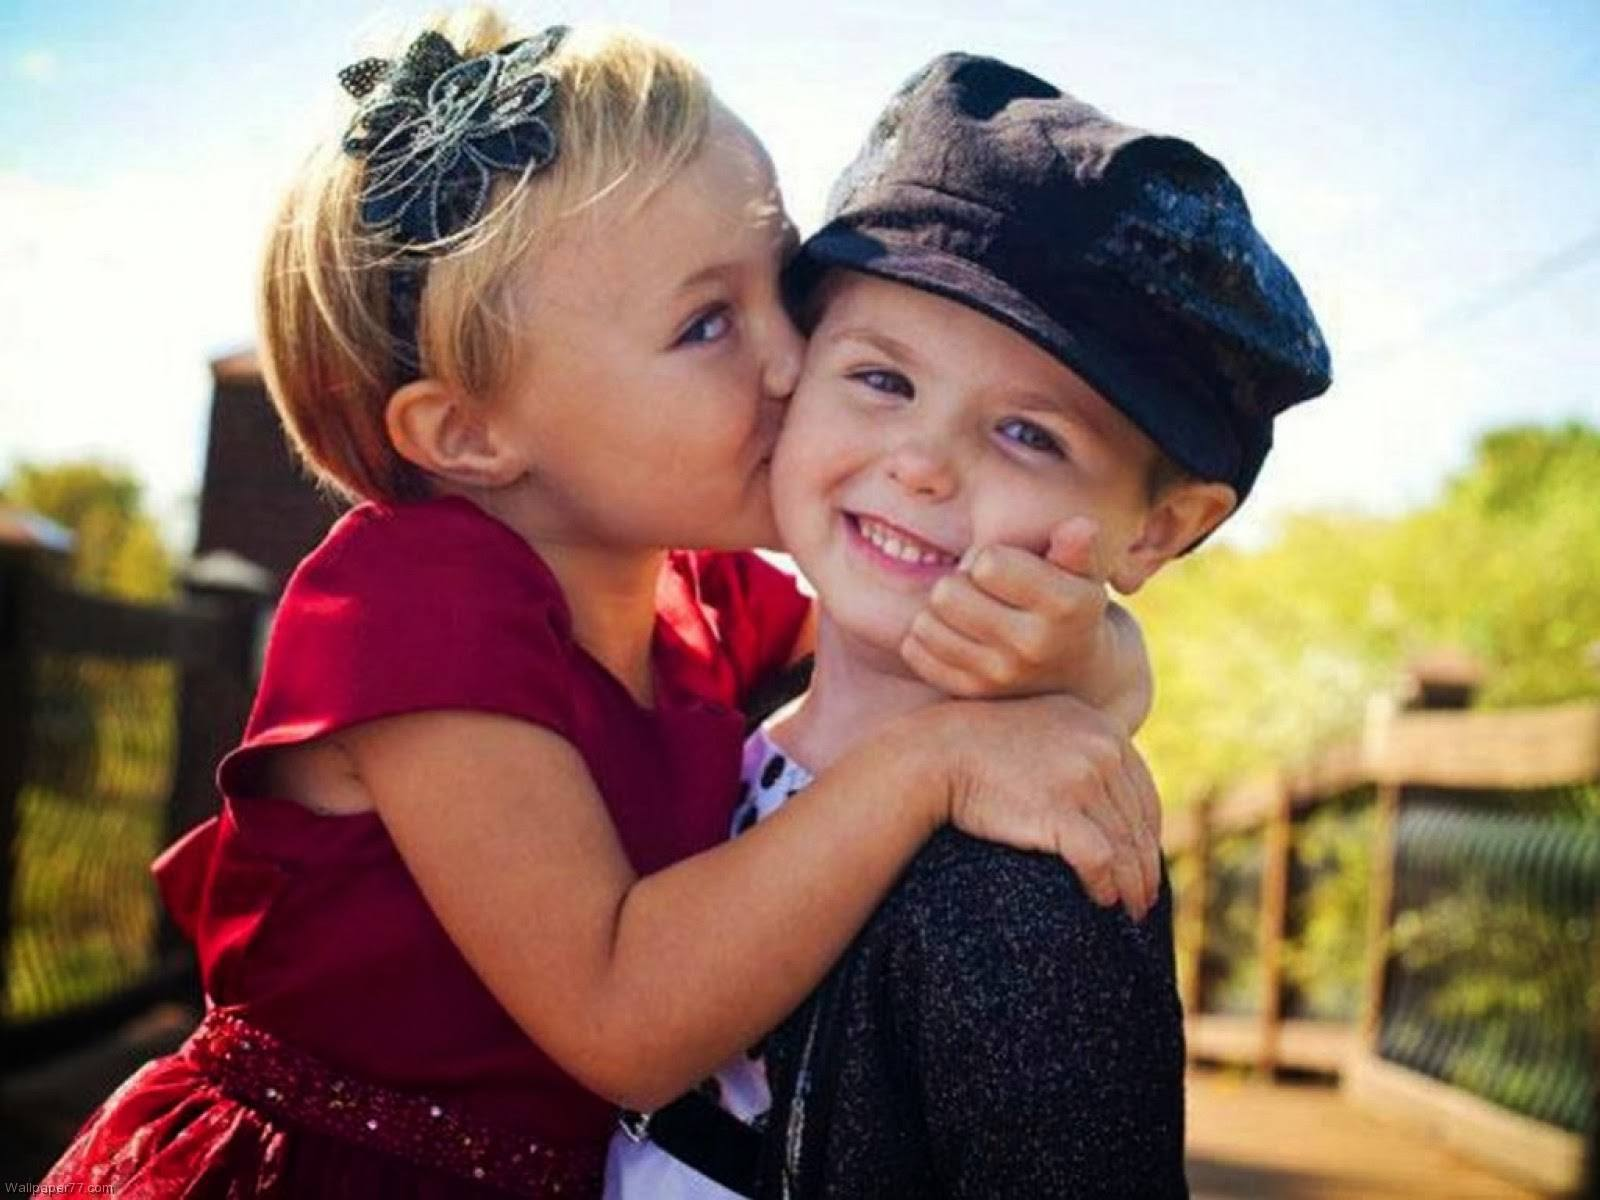 Cutest Children Love kissing HD images